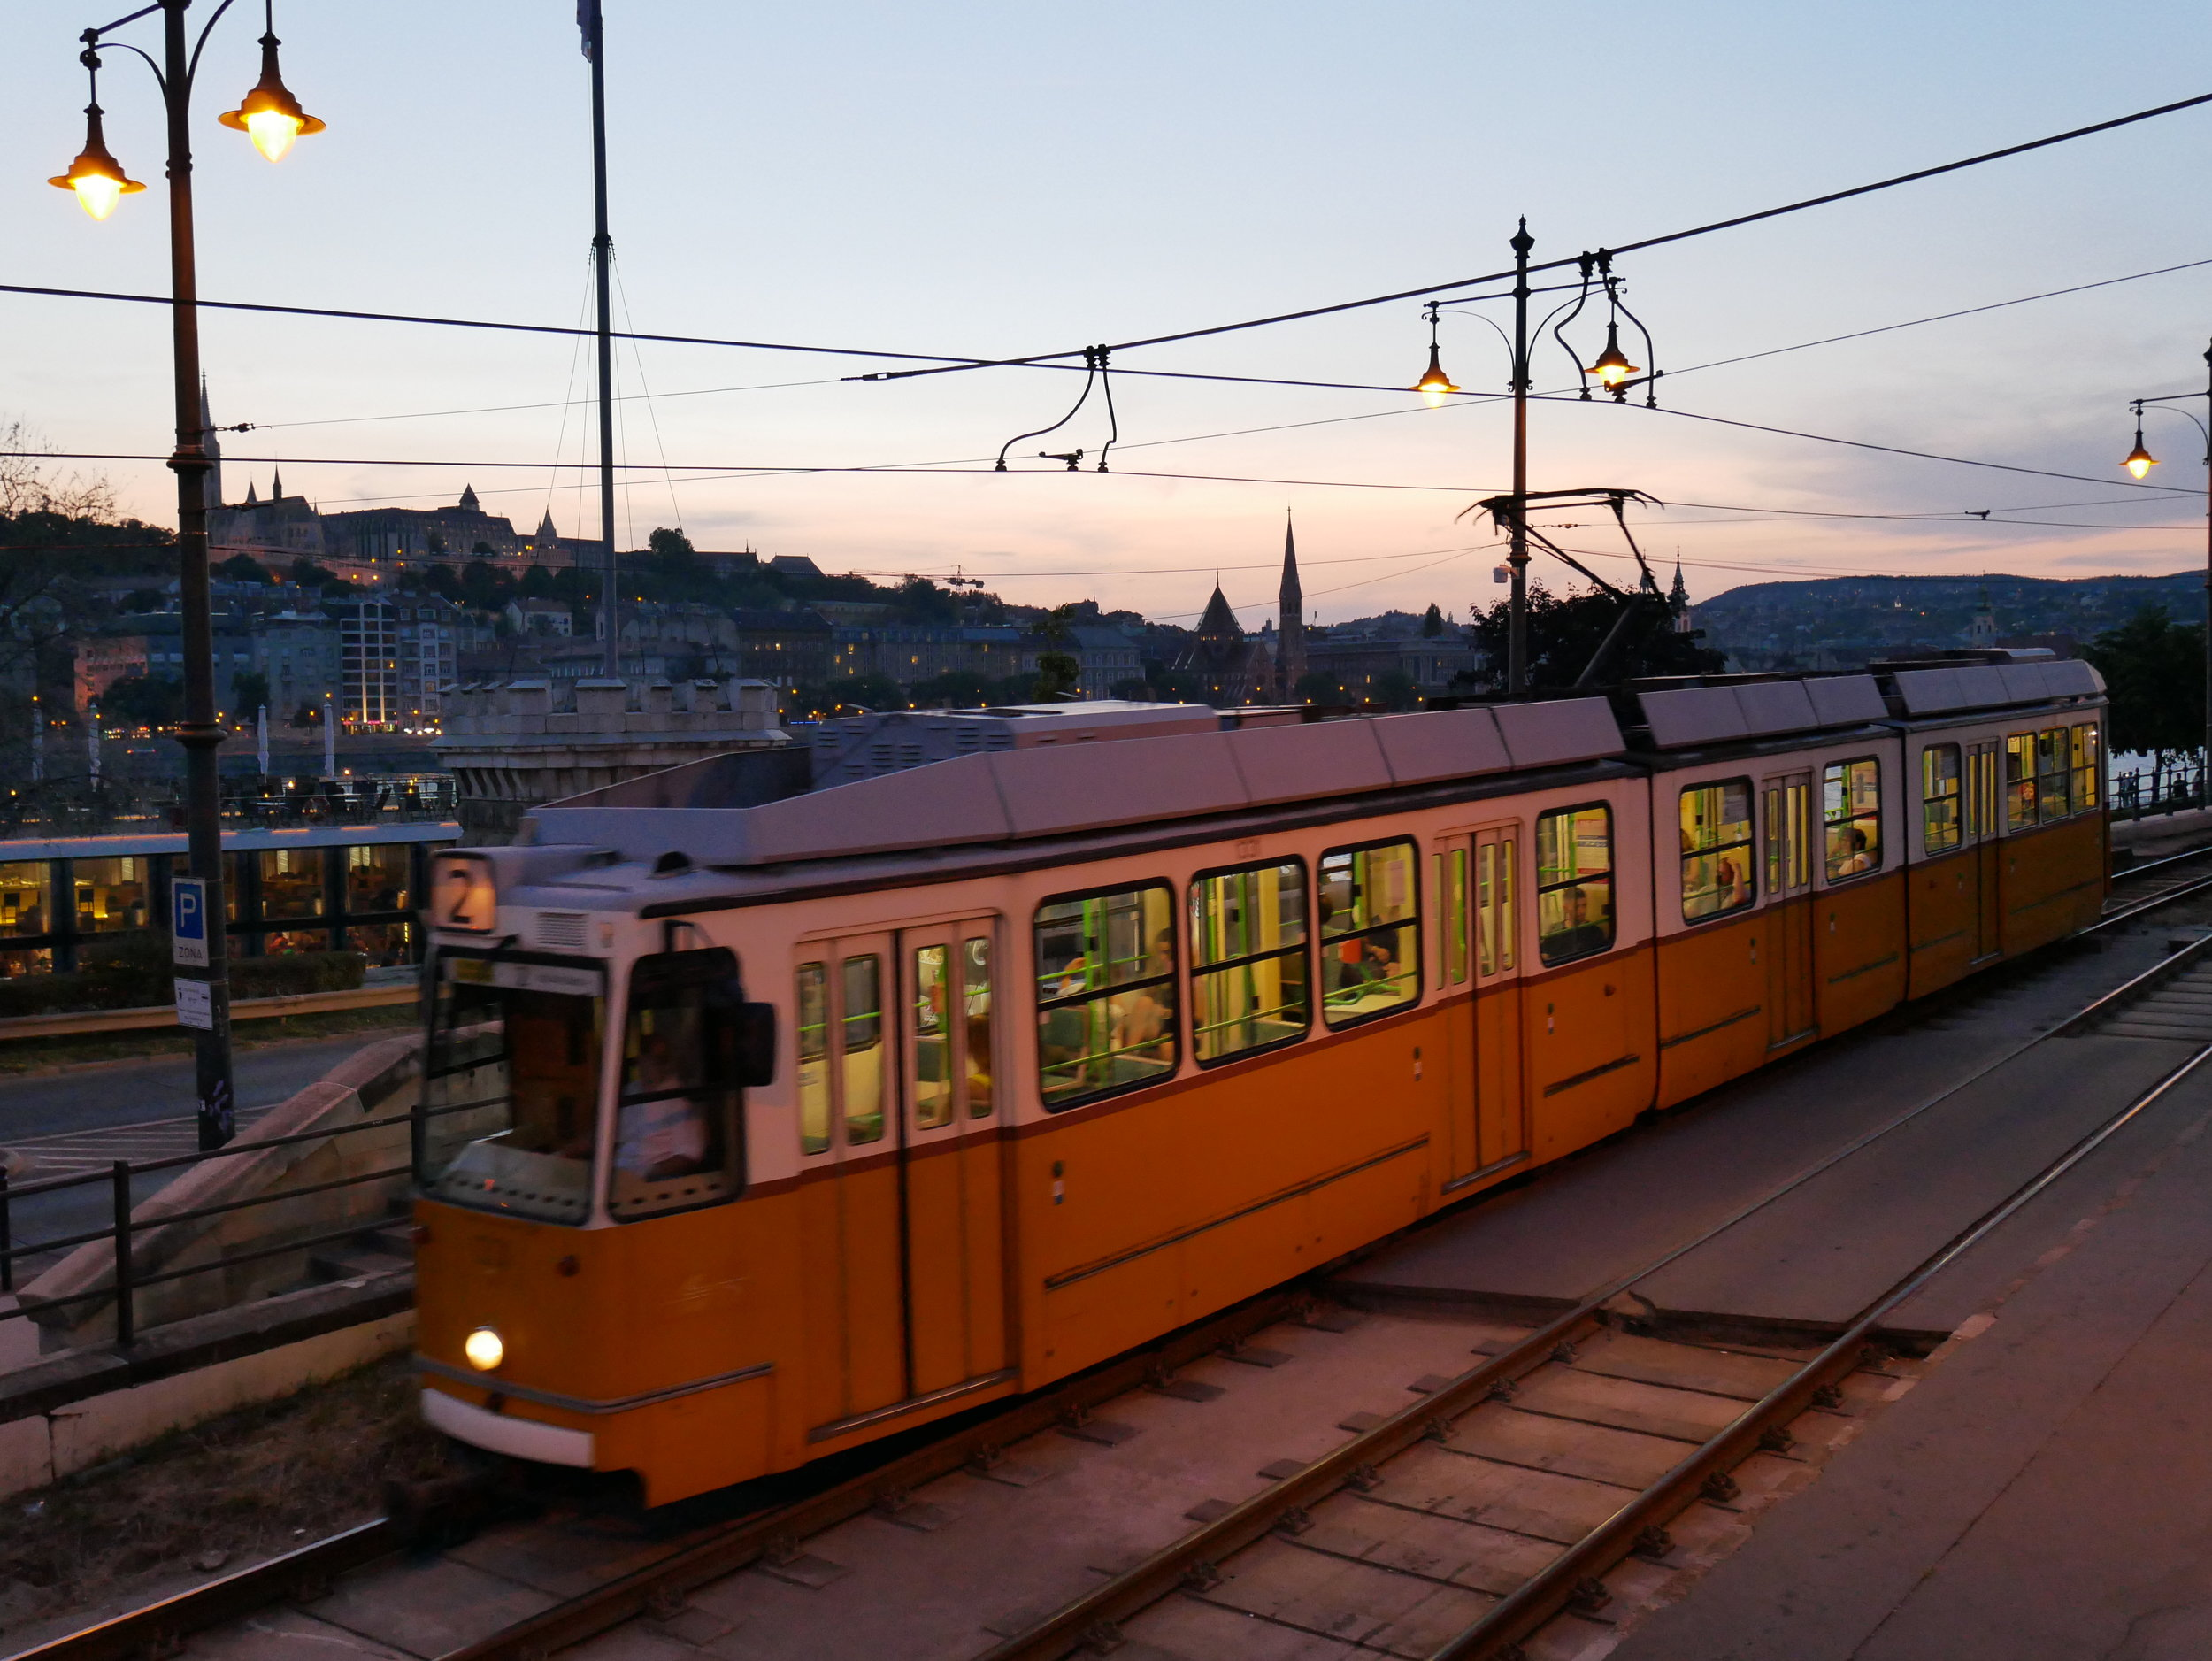 Not only are Budapest's trams adorable, they are super easy to use for seeing the city's many sights!